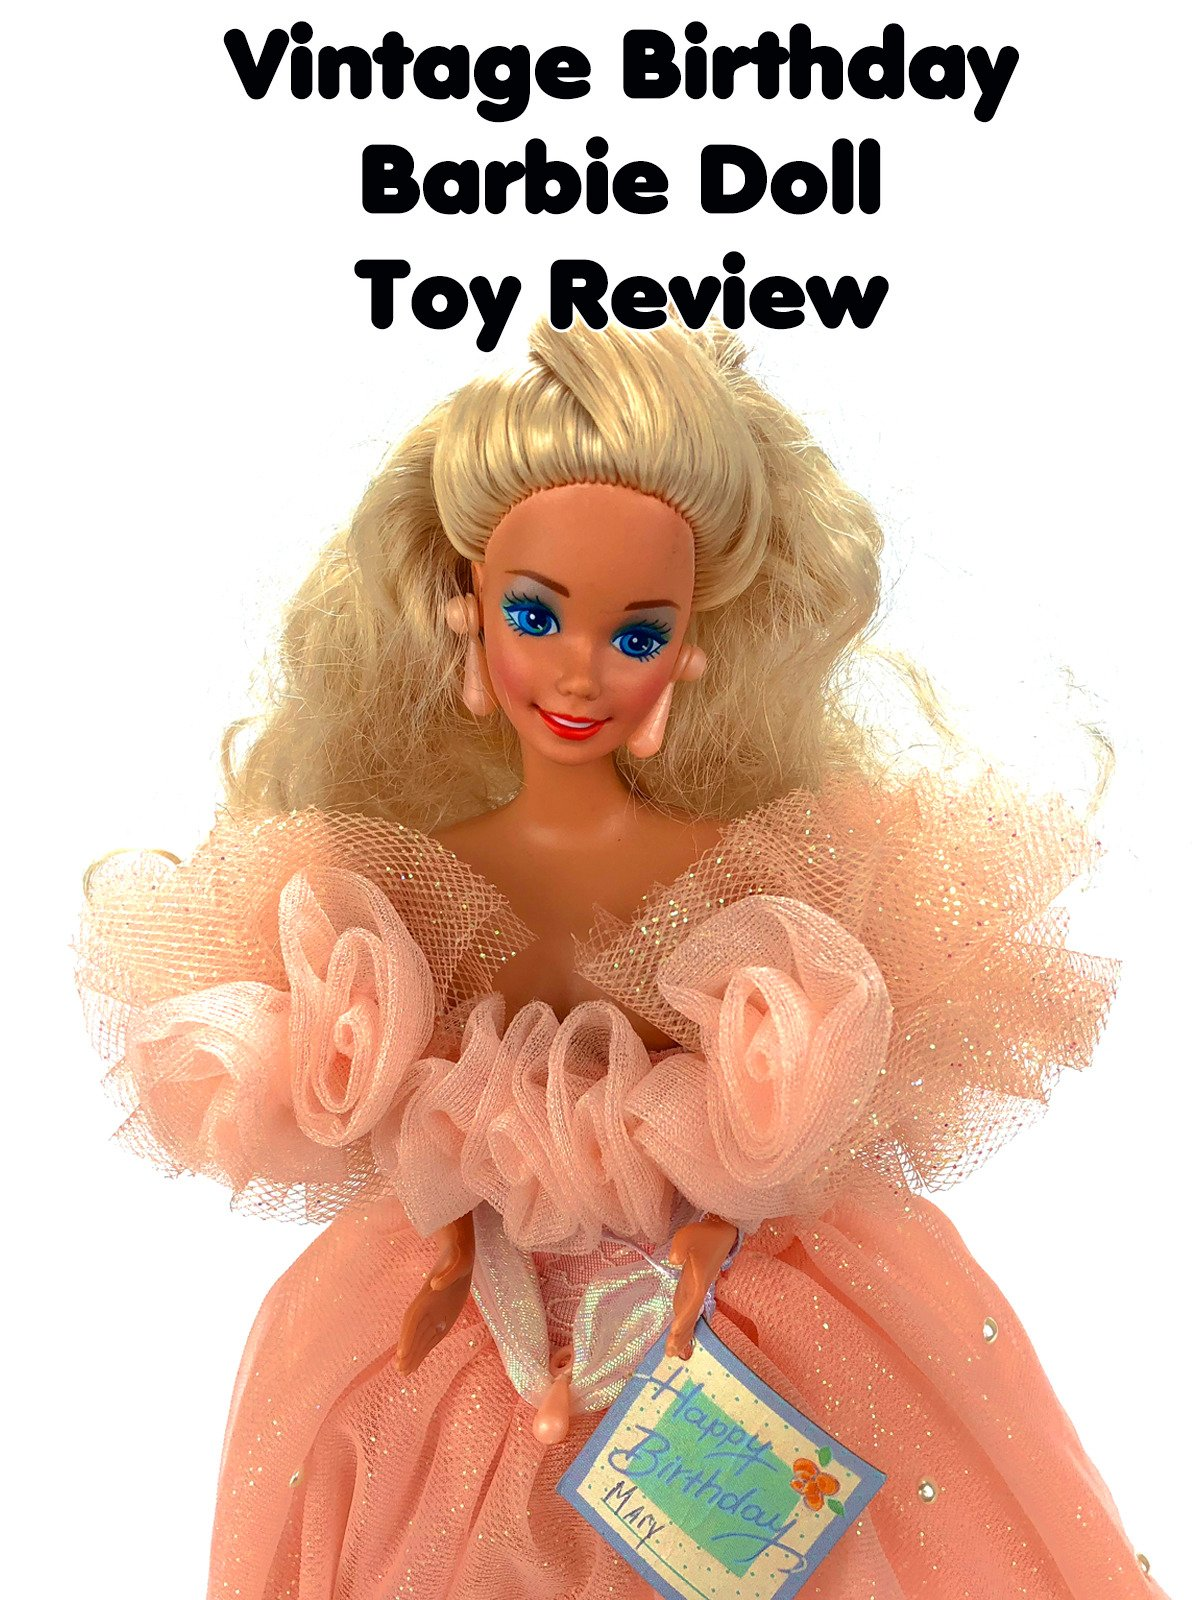 Review: Vintage Birthday Barbie Doll Toy Review on Amazon Prime Video UK